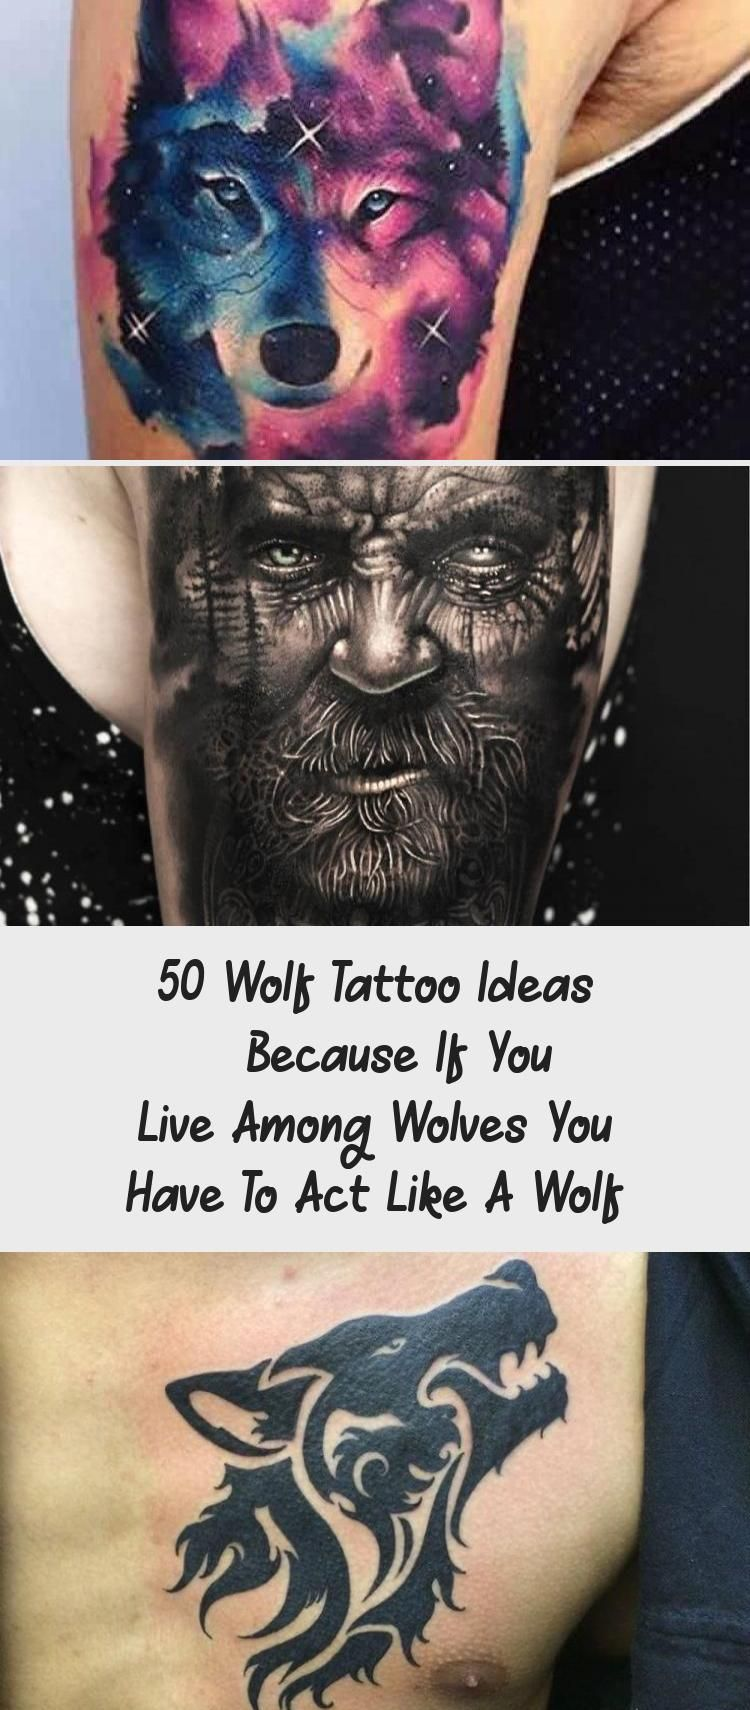 Photo of 50 Wolf Tattoo Ideas – Because If You Live Among Wolves You Have To Act Like A Wolf – Tattoos